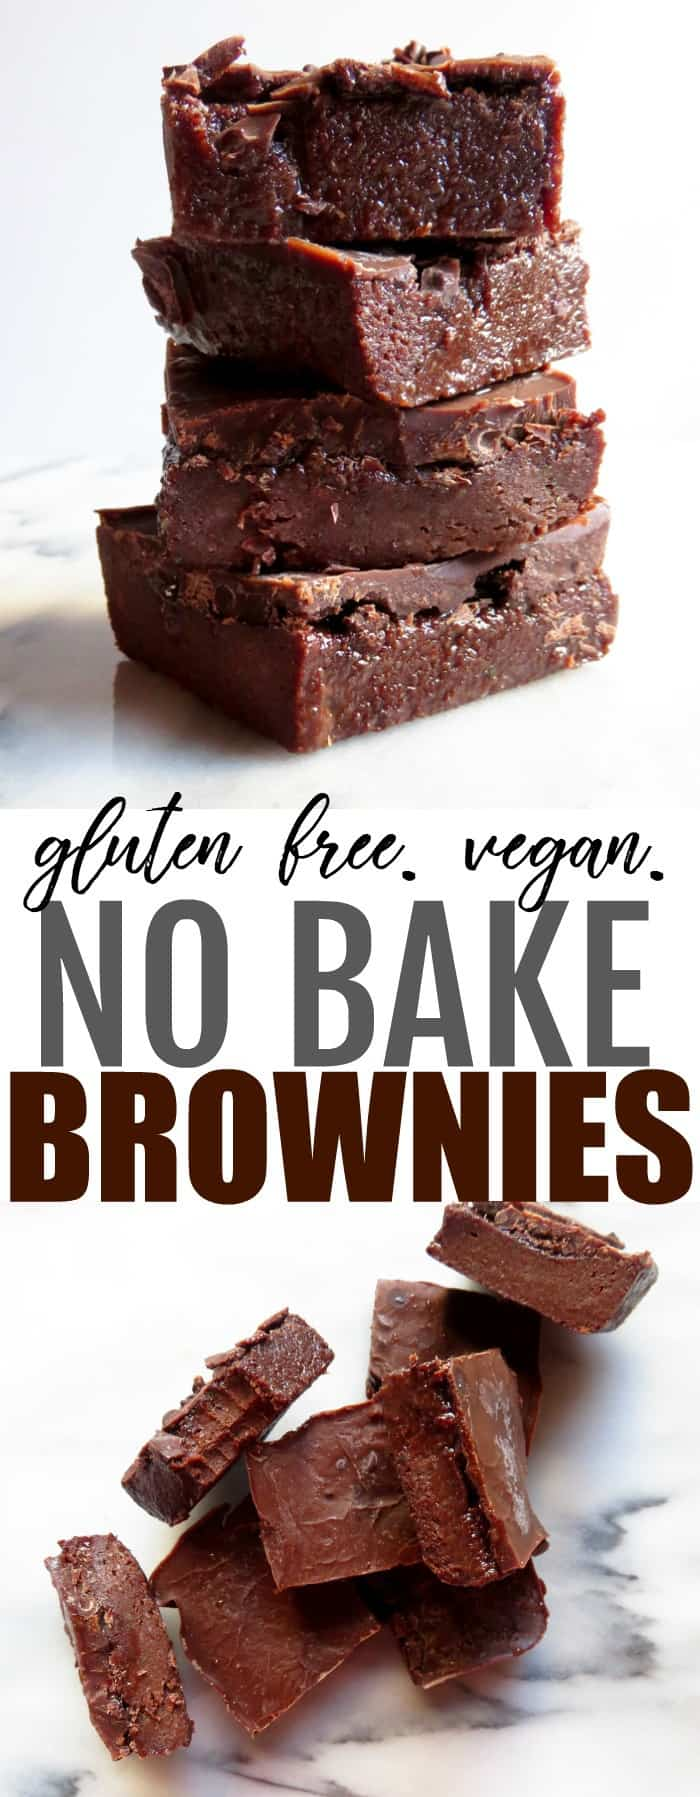 Intensely fudgey no bake gluten free and vegan brownies that you will OBSESS over! They're so chocolatey and delish, you need to try this recipe!! thetoastedpinenut.com